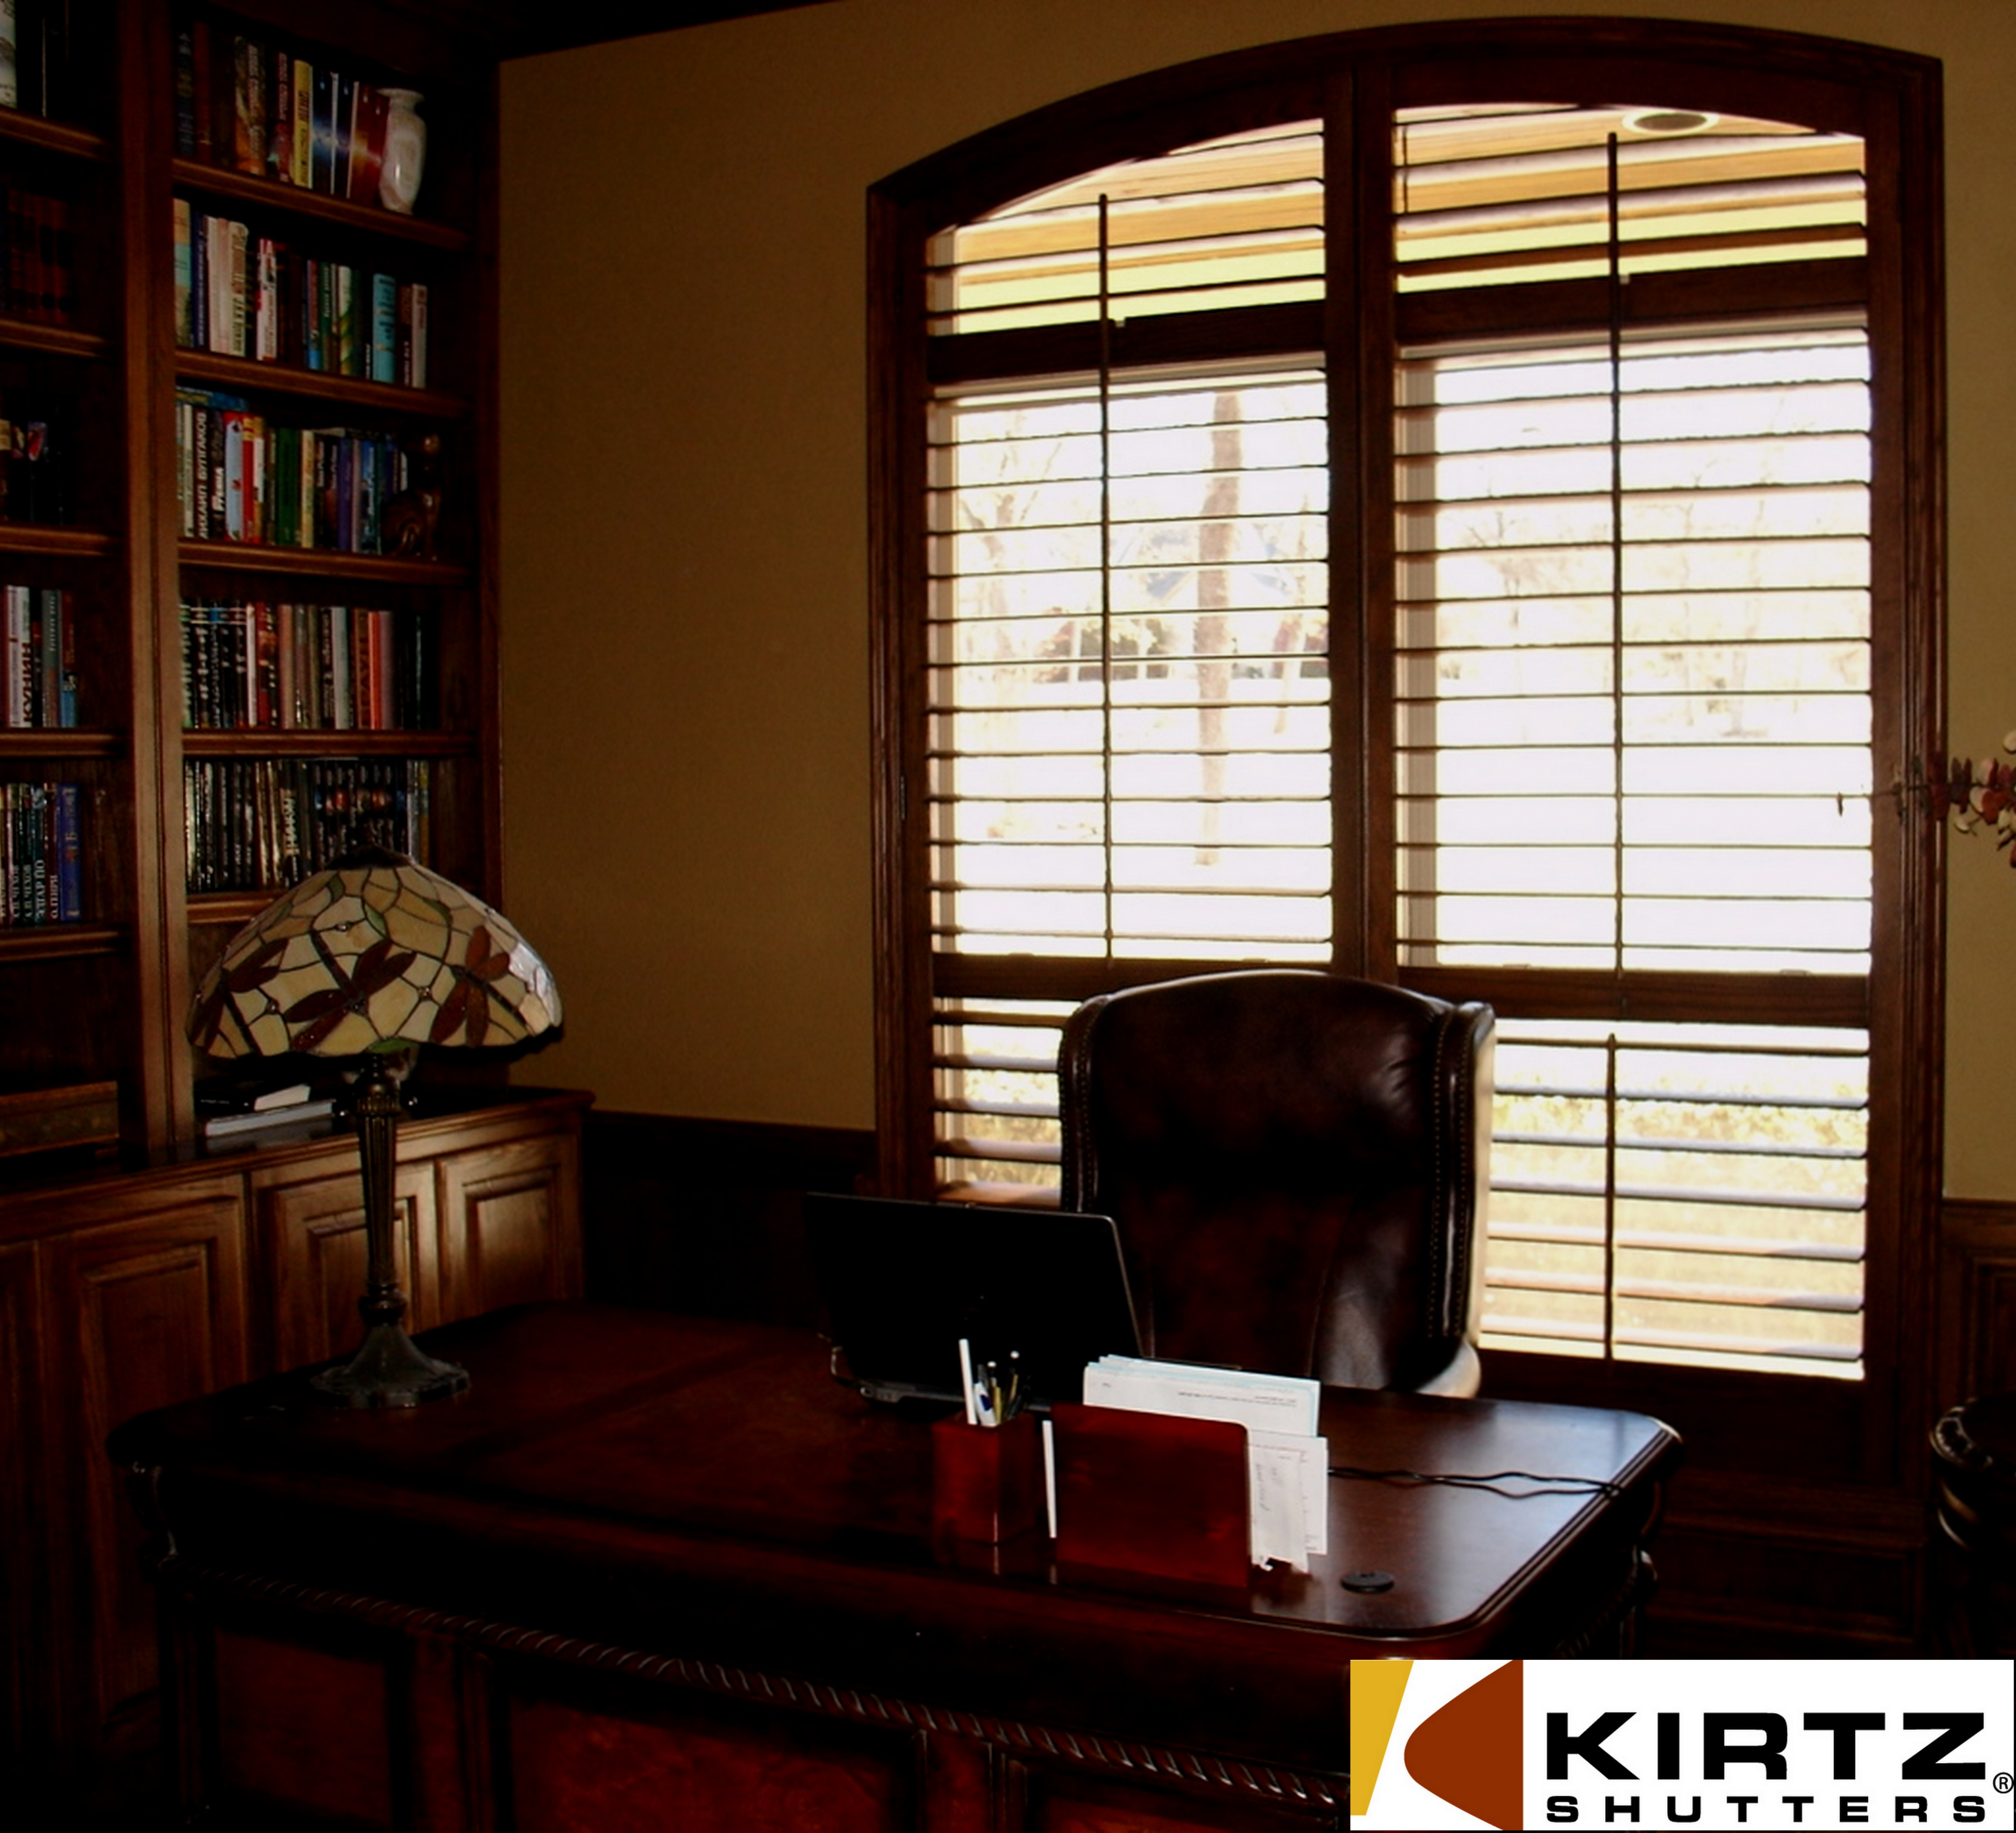 How to install shutters in windows with wainscoting and chair